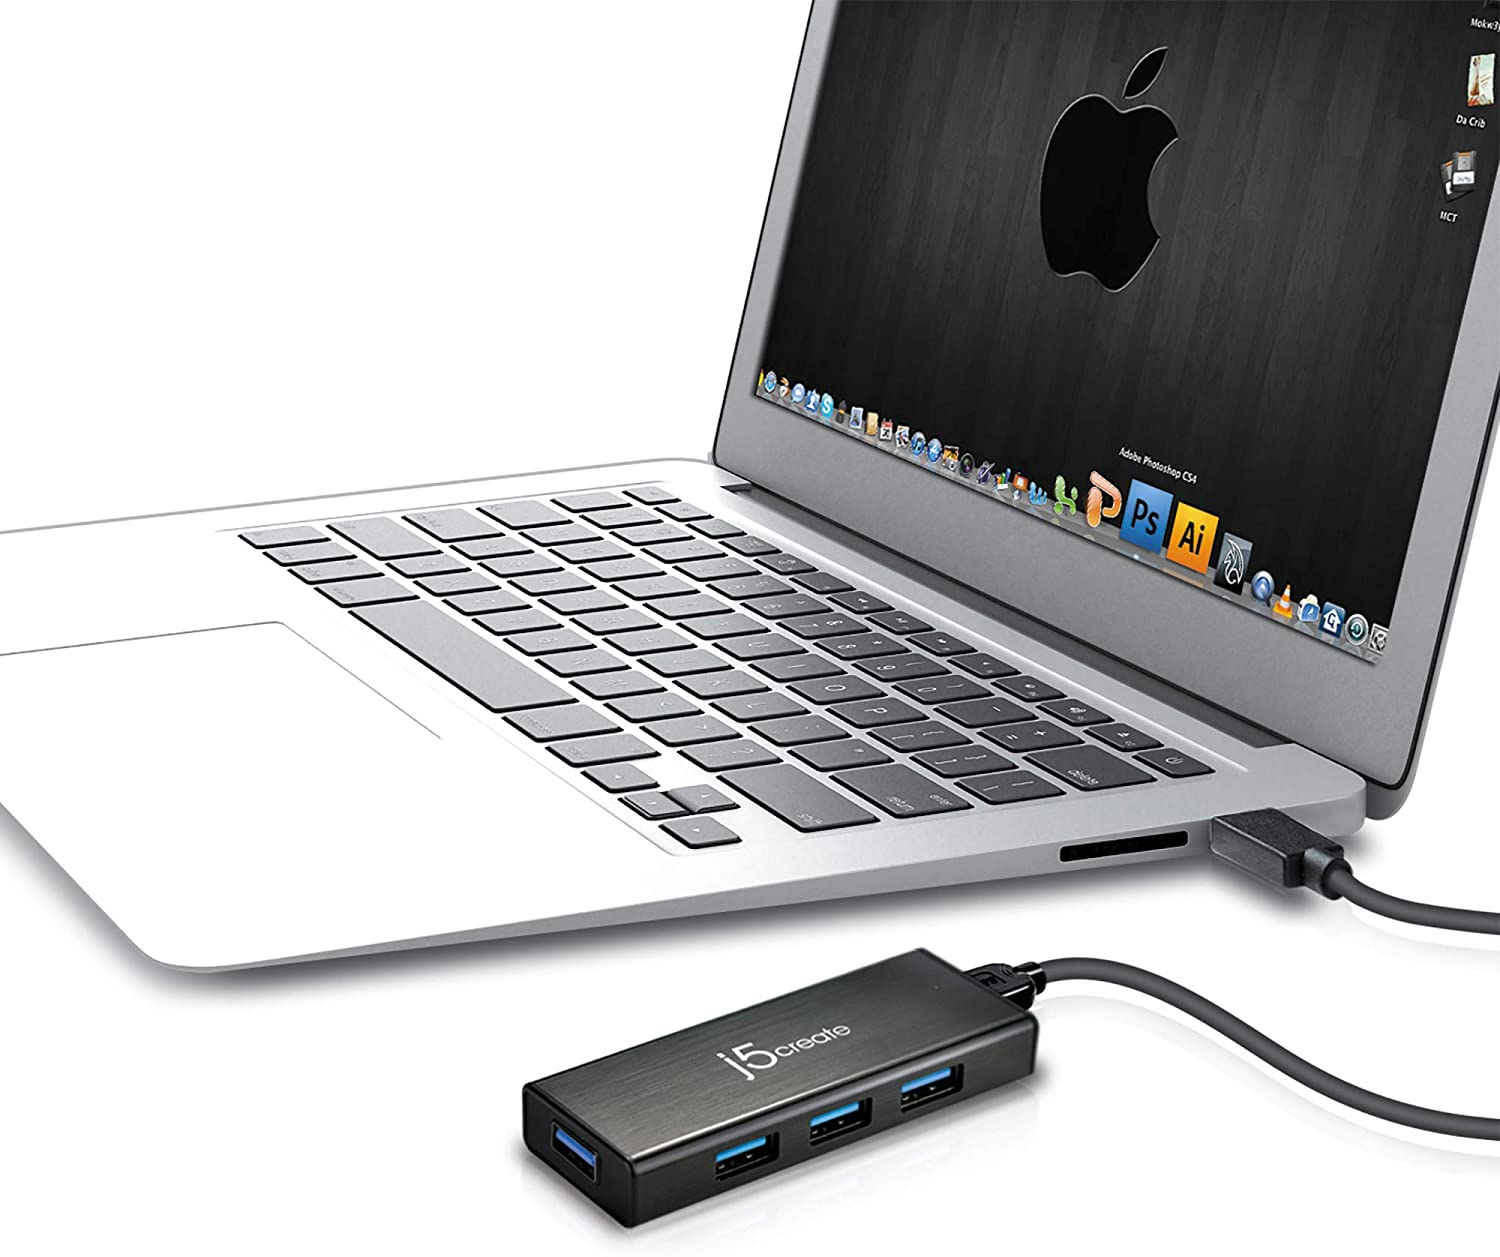 j5create 4-Port Powered USB 3.0 Data Hub with 2 ft Extended Cale [15W Power Adapter Included] for Mac, MacBook, Windows, Laptop, Surface, XPS, PC (JUH340)